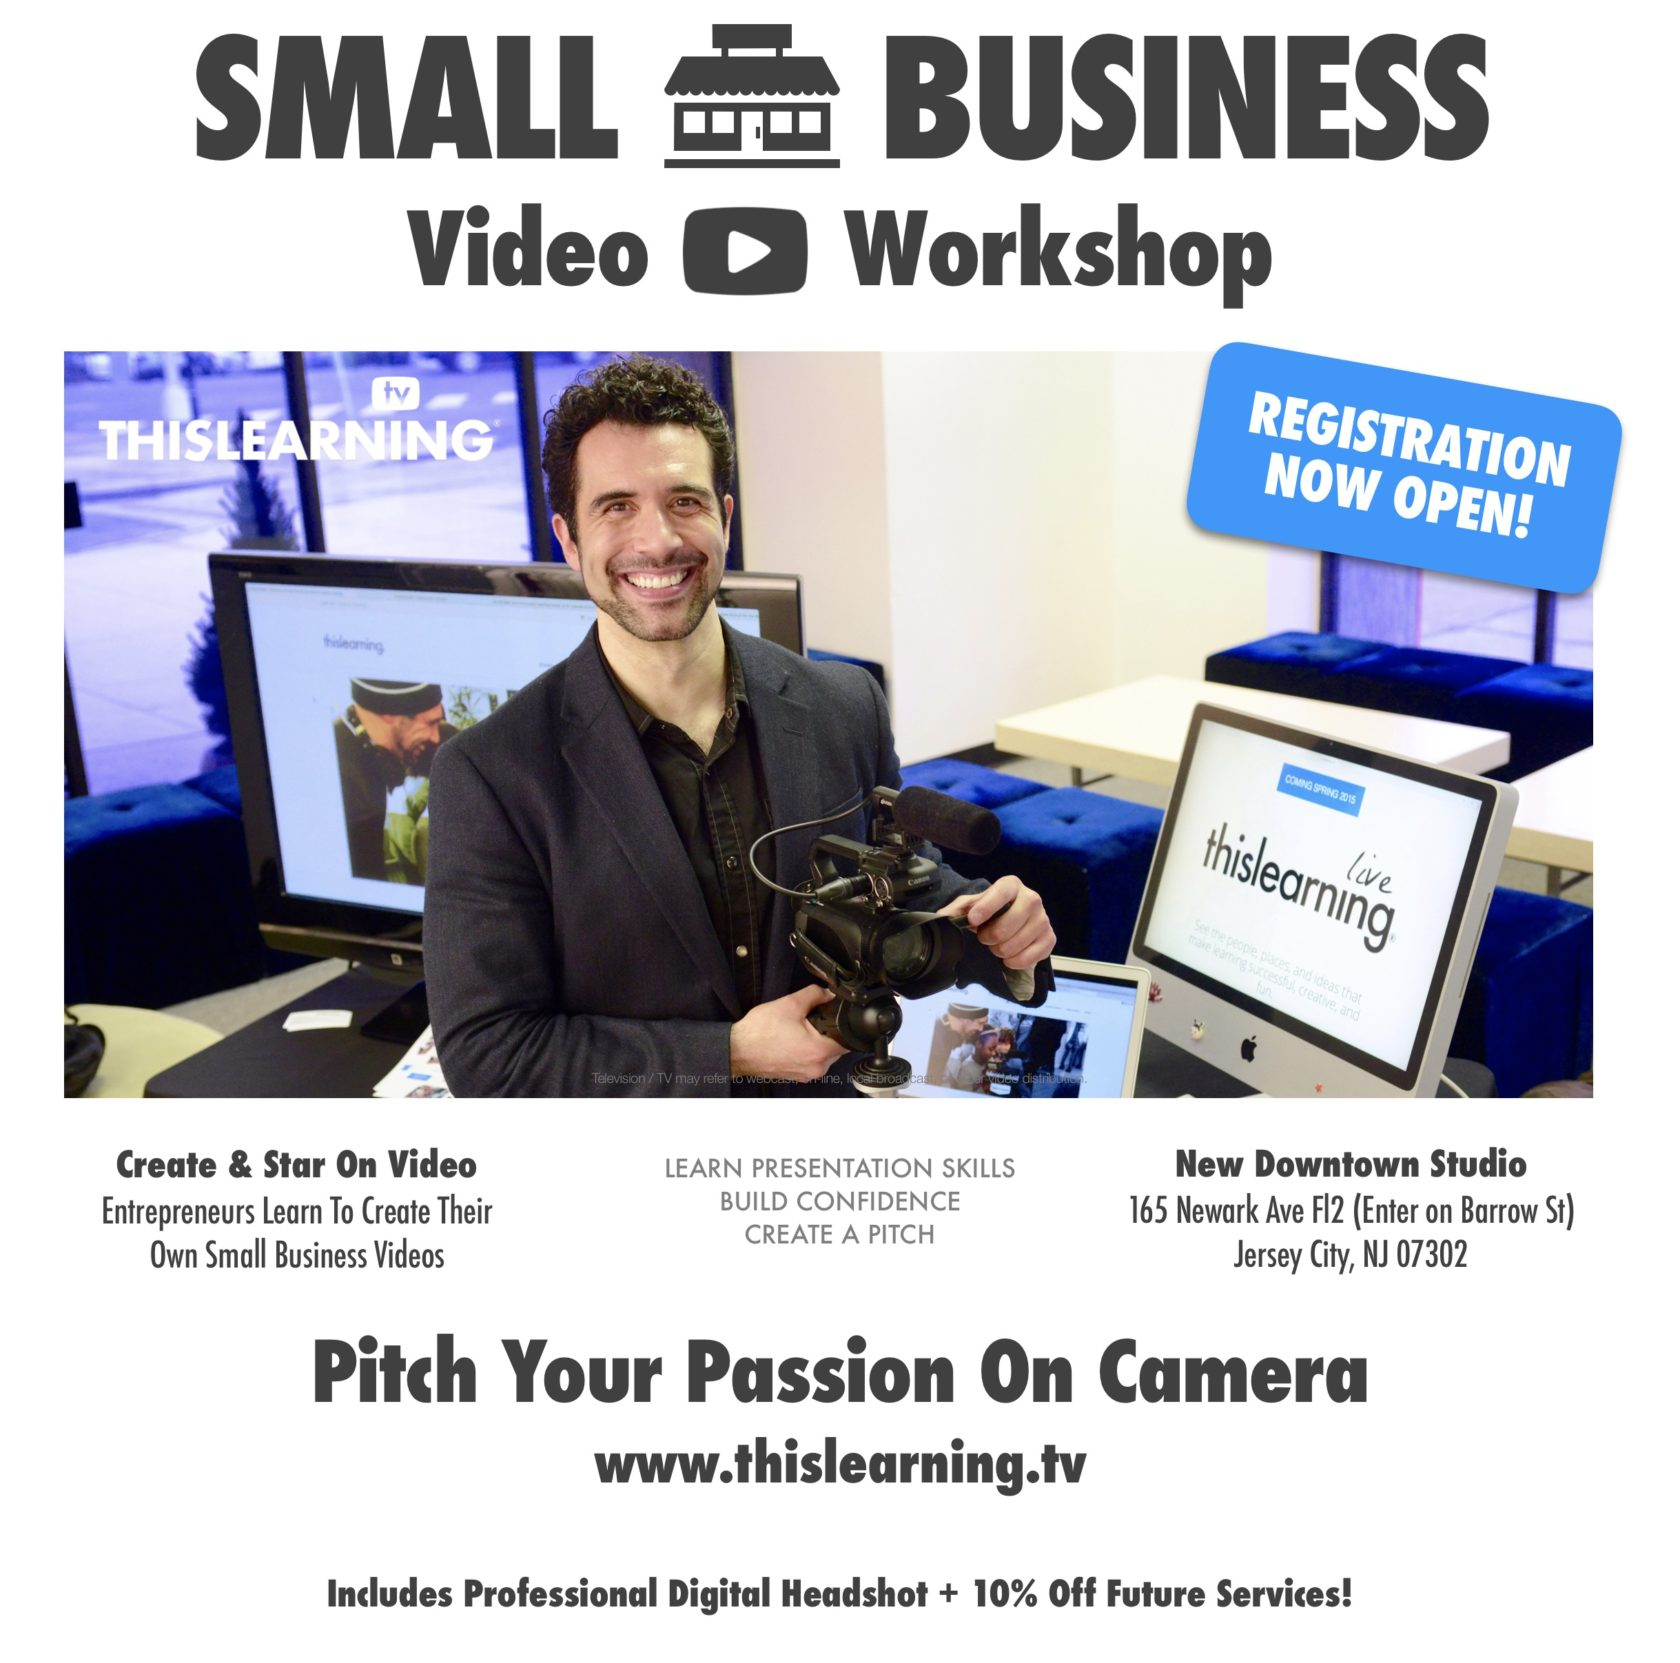 Small Business Video Workshop